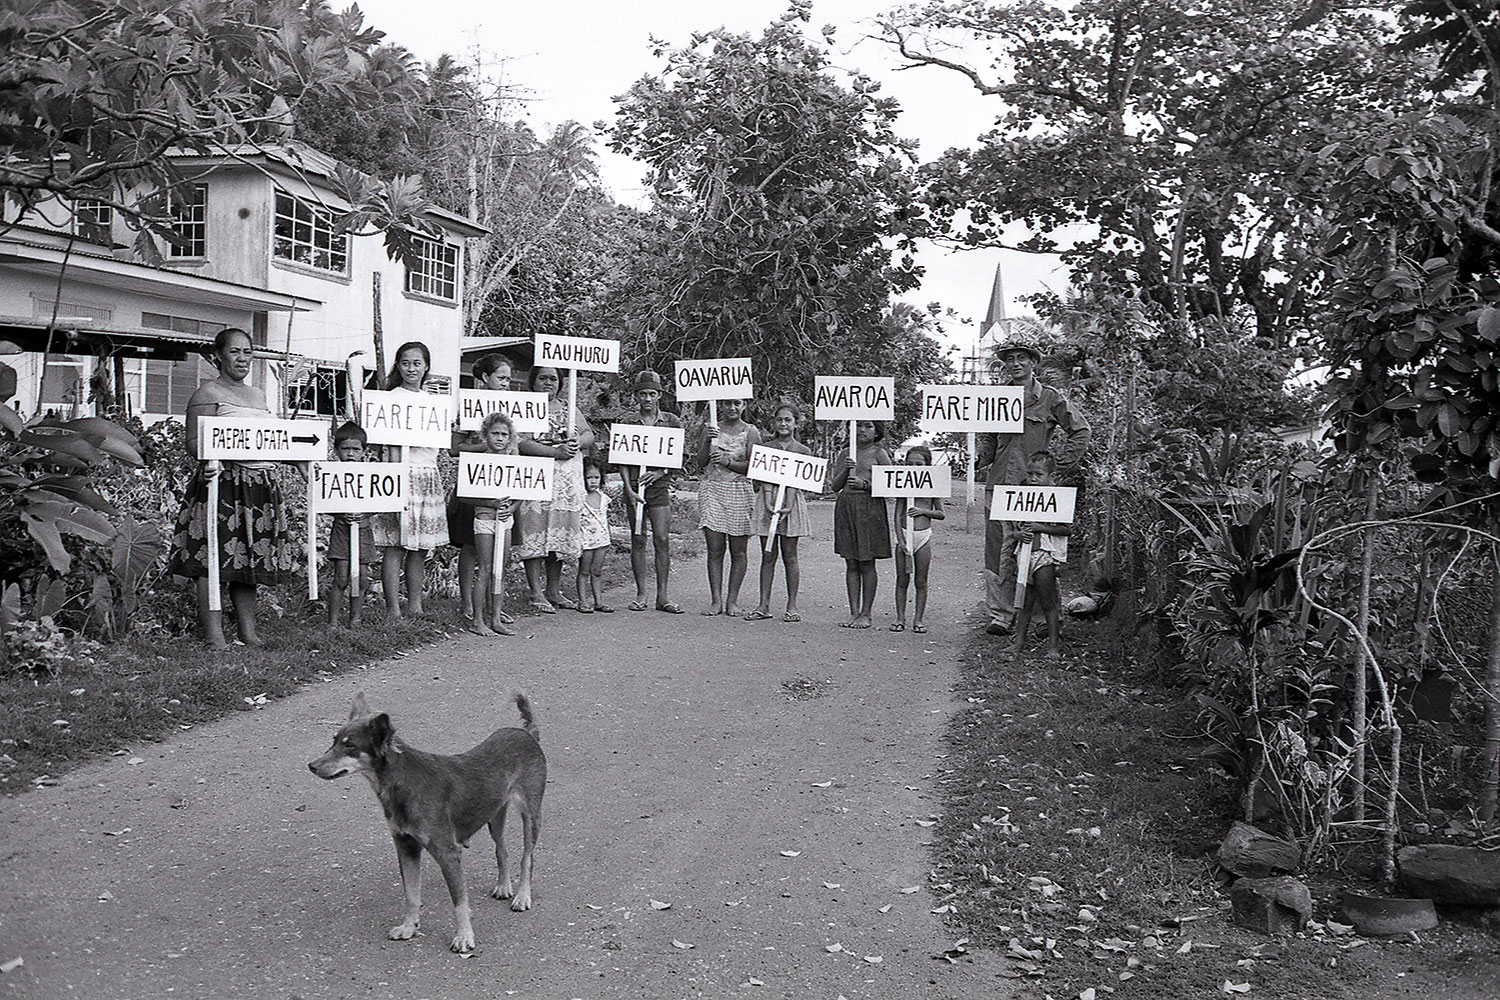 Black and white photo of various aged people holding signs, with a dog in the foreground.